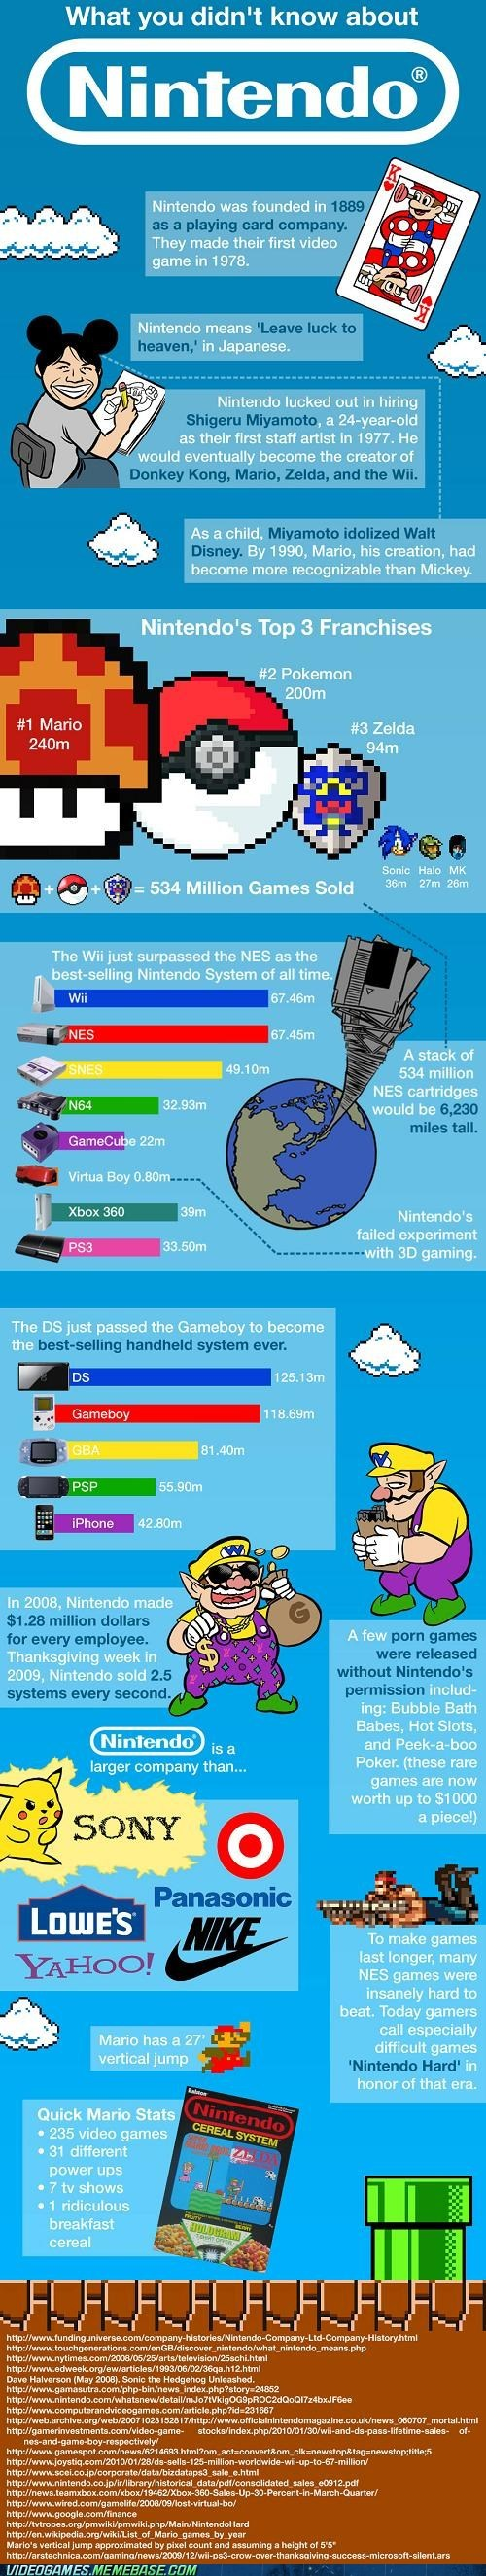 Nintendo Facts